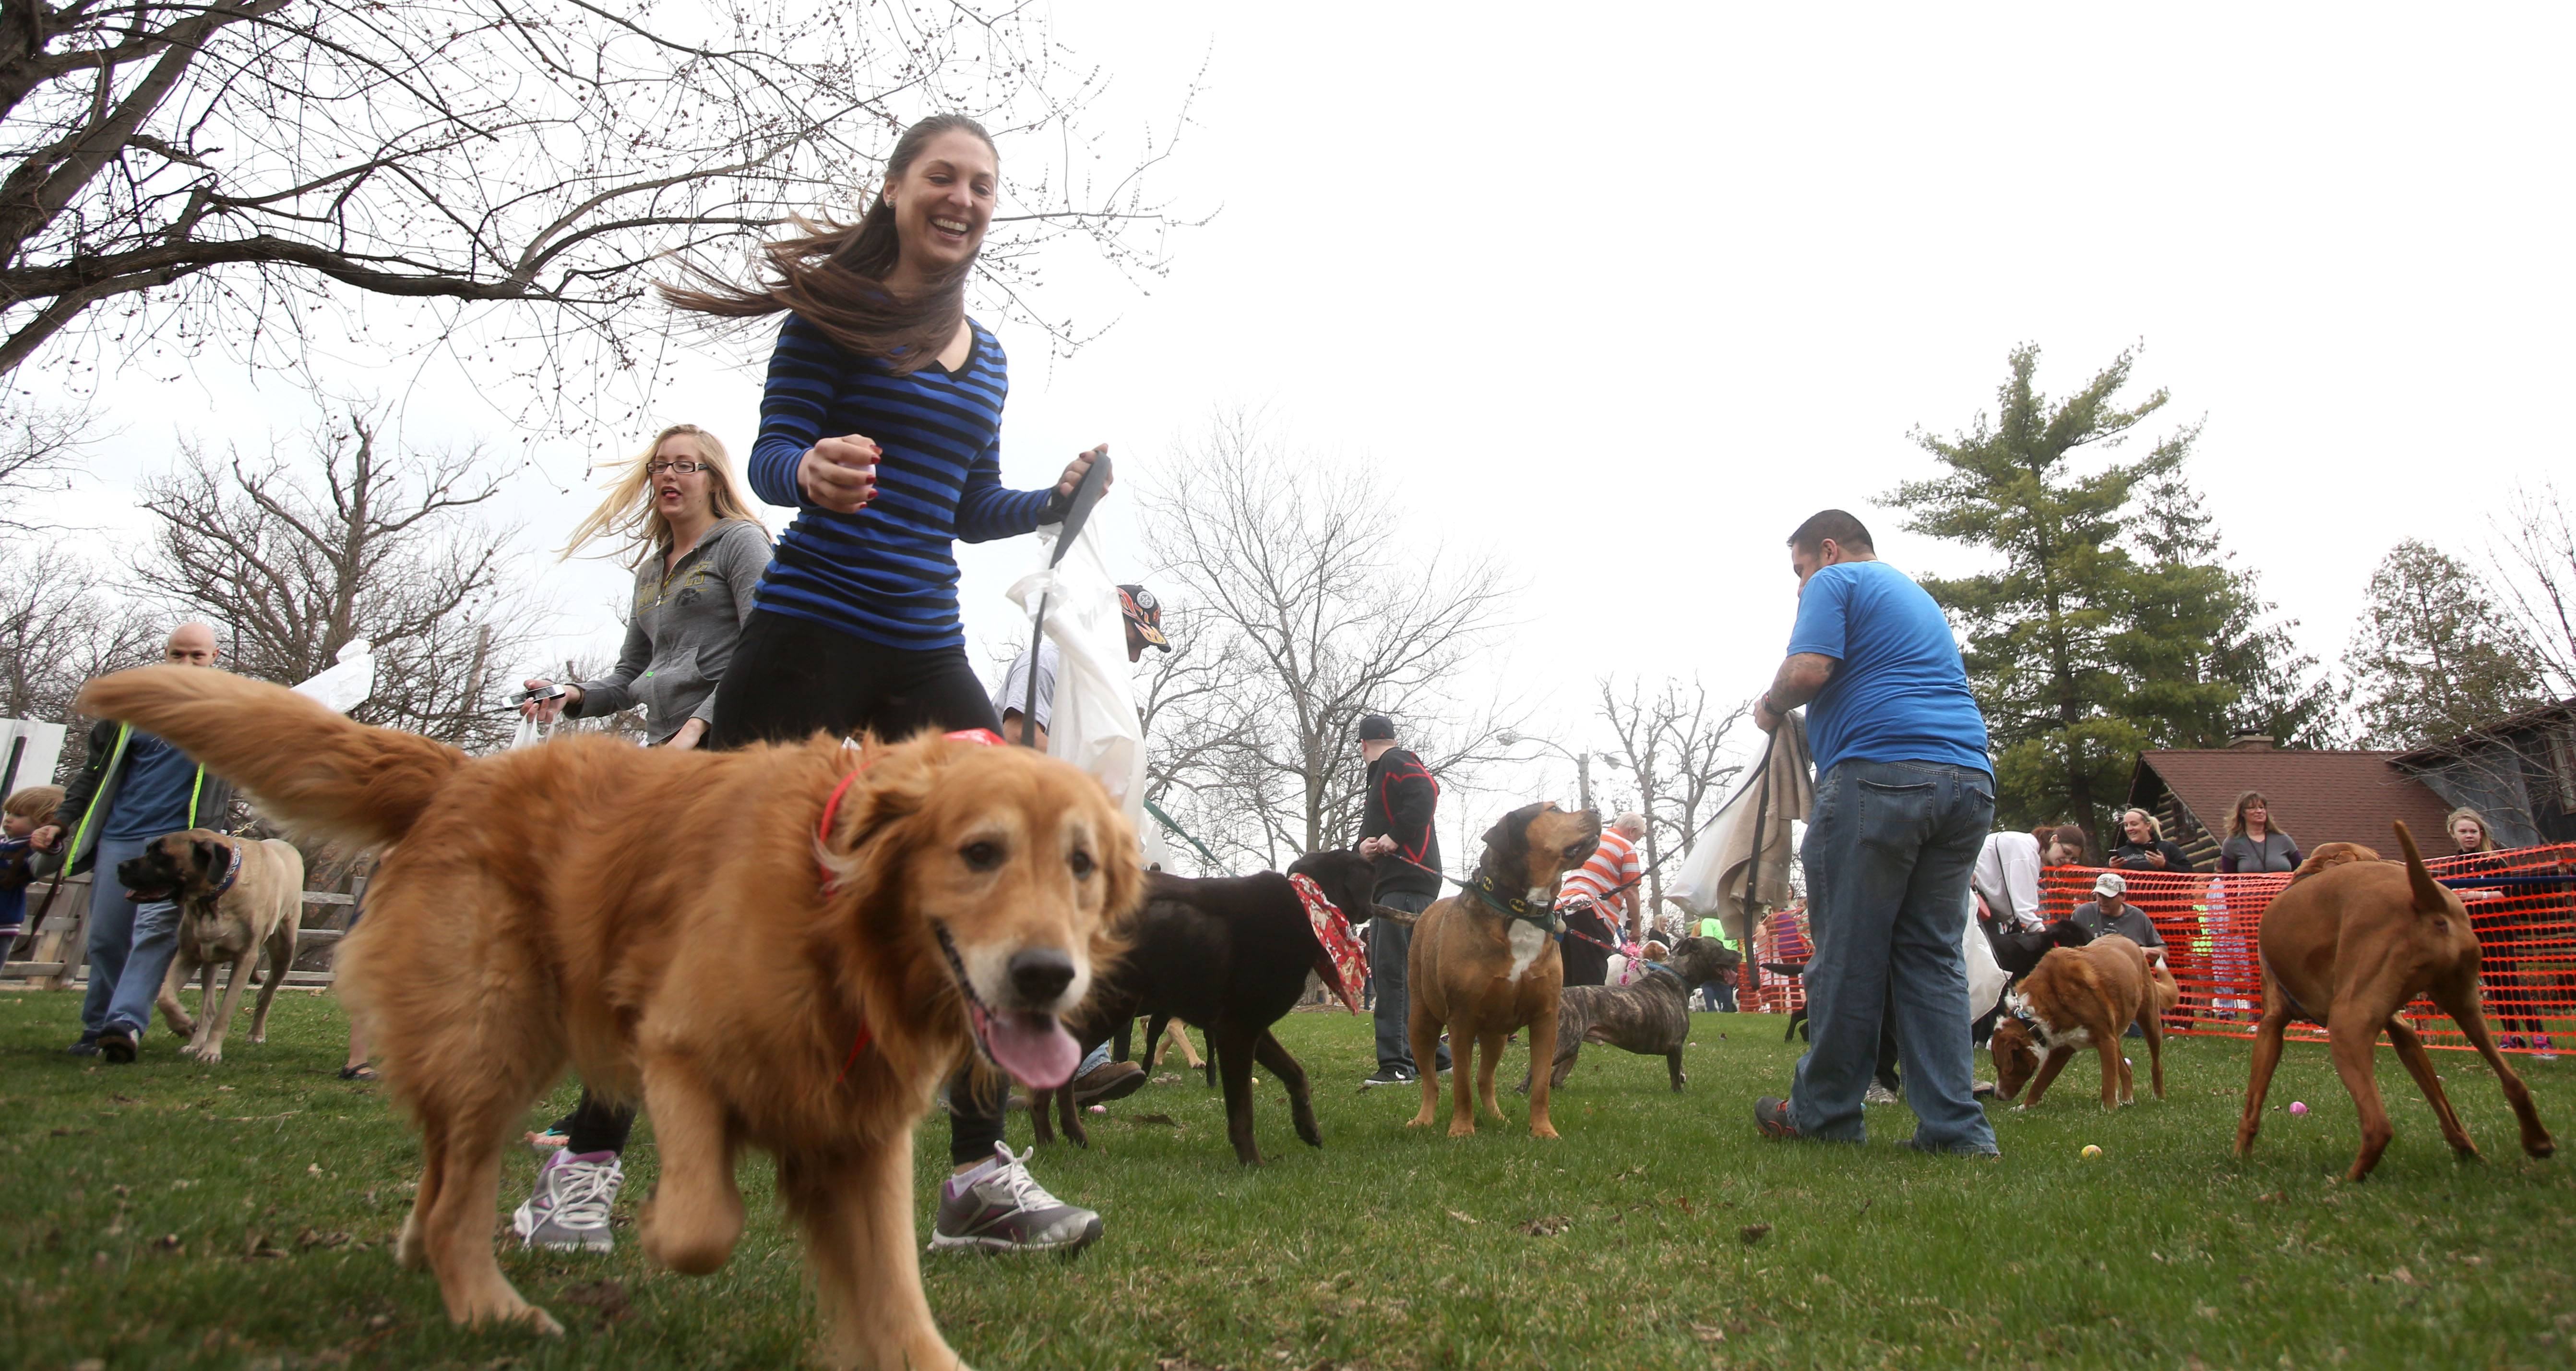 Close to 100 canines and their owner's went on the hunt Sunday for plastic eggs filled with dog treats and other goodies during the sixth annual Doggie Egg Hunt at the Cabin Nature Center White Oaks Dog Park in Wood Dale. Above, Debora Oliveira of Itasca and her dog Donovan, a Golden Retriever, search for eggs.